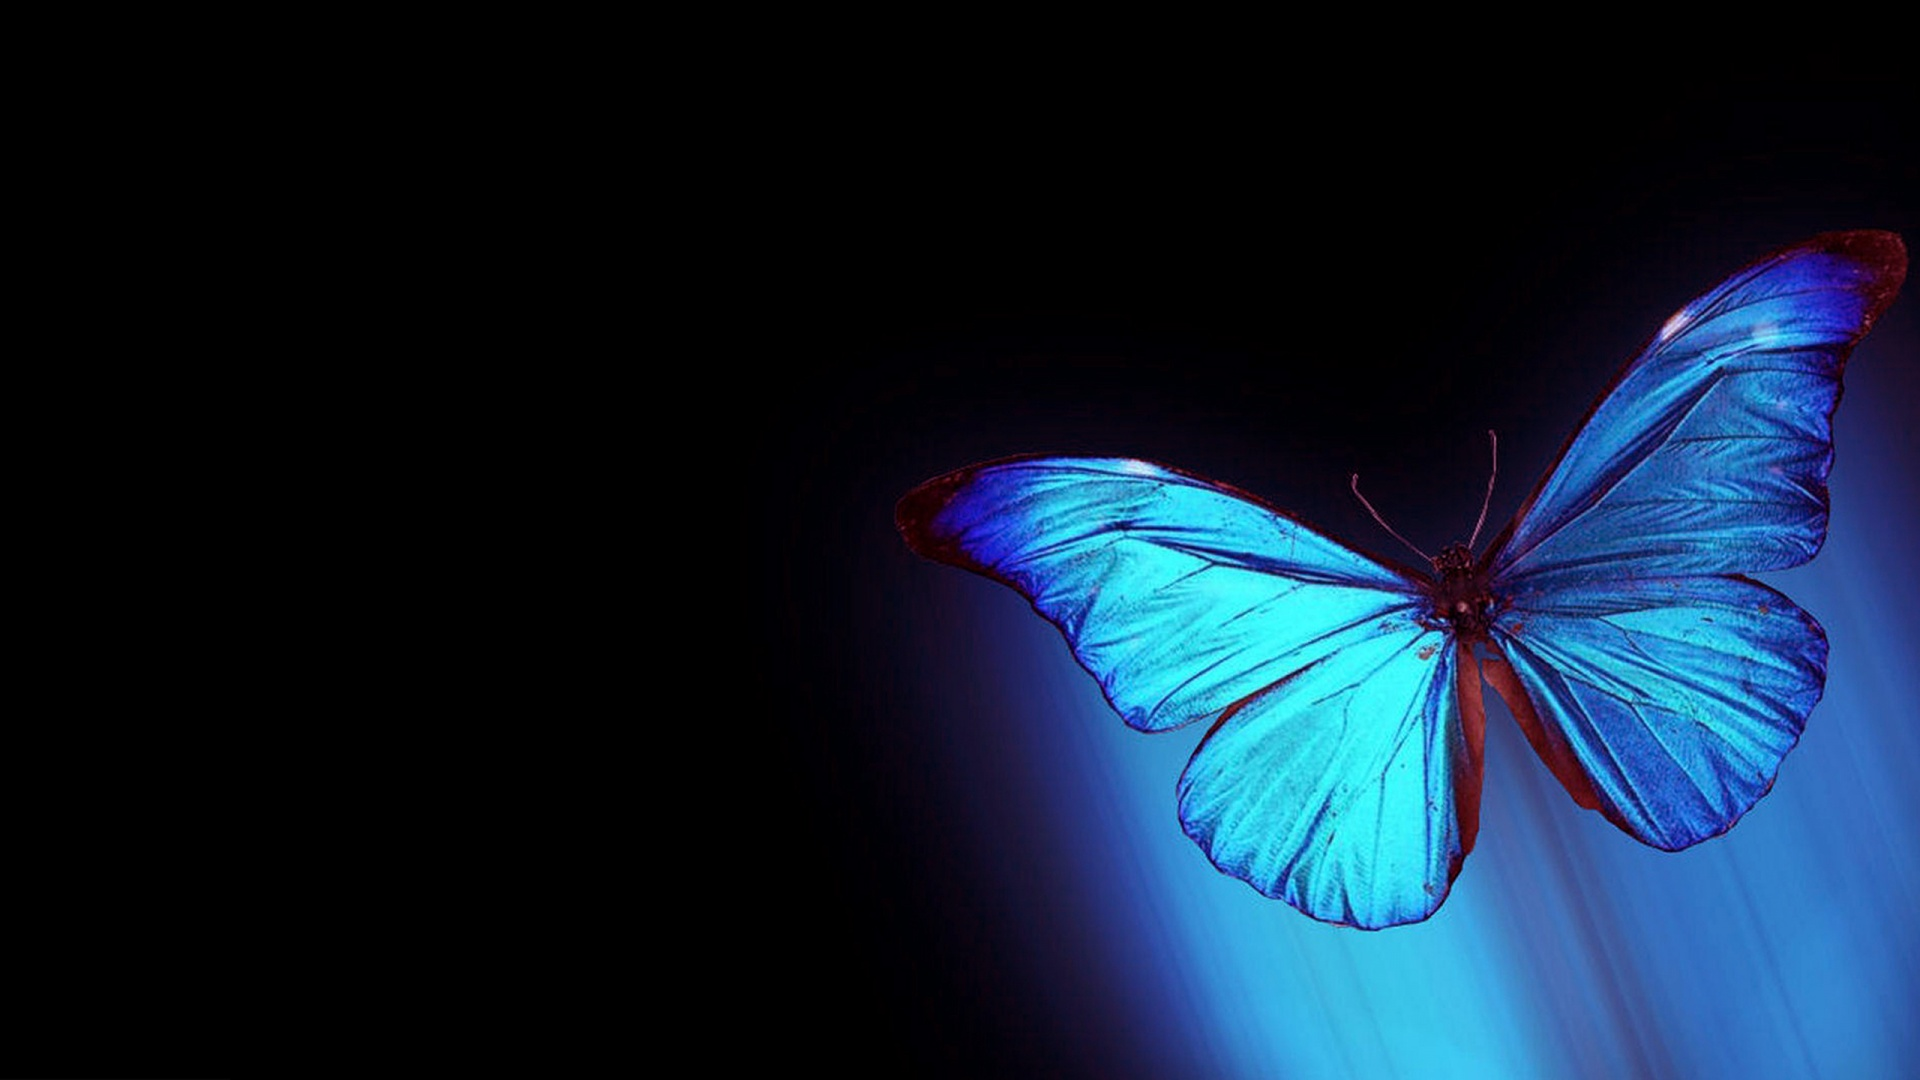 Abstract Butterfly Wallpapers For Laptop Unique HD Wallpapers 1920x1080